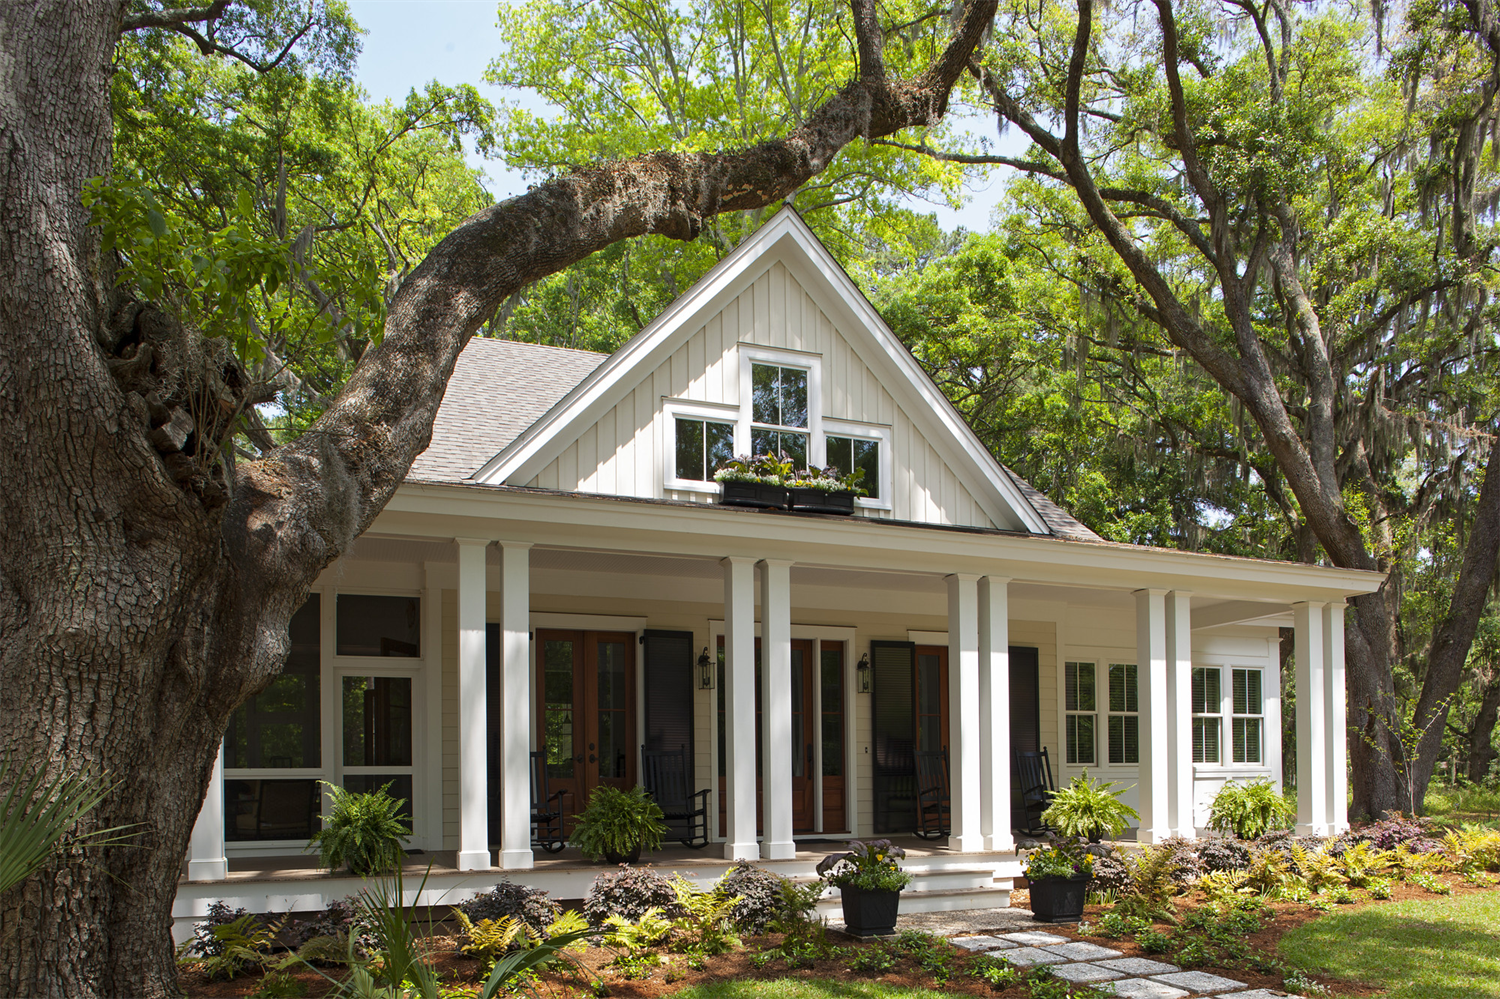 Home with James Hardie exterior siding.